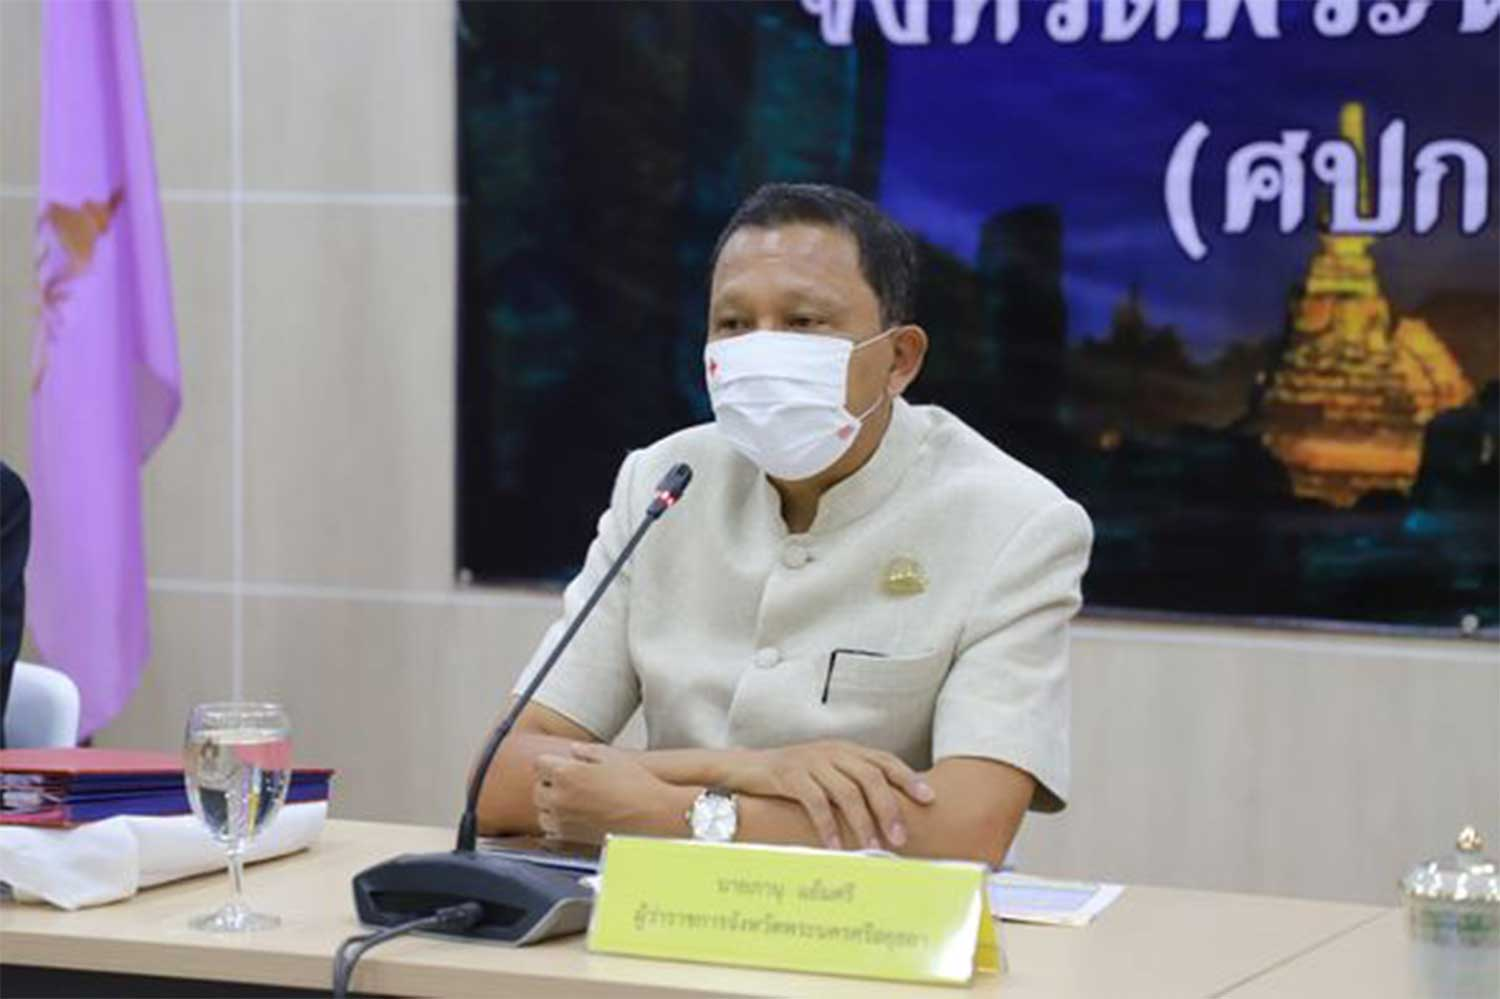 Aytthaya governor Panu Yaemsri chairs a meeting of the provincial communicable disease committee on Thursday morning. (Photo: Sunthorn Pongpao)